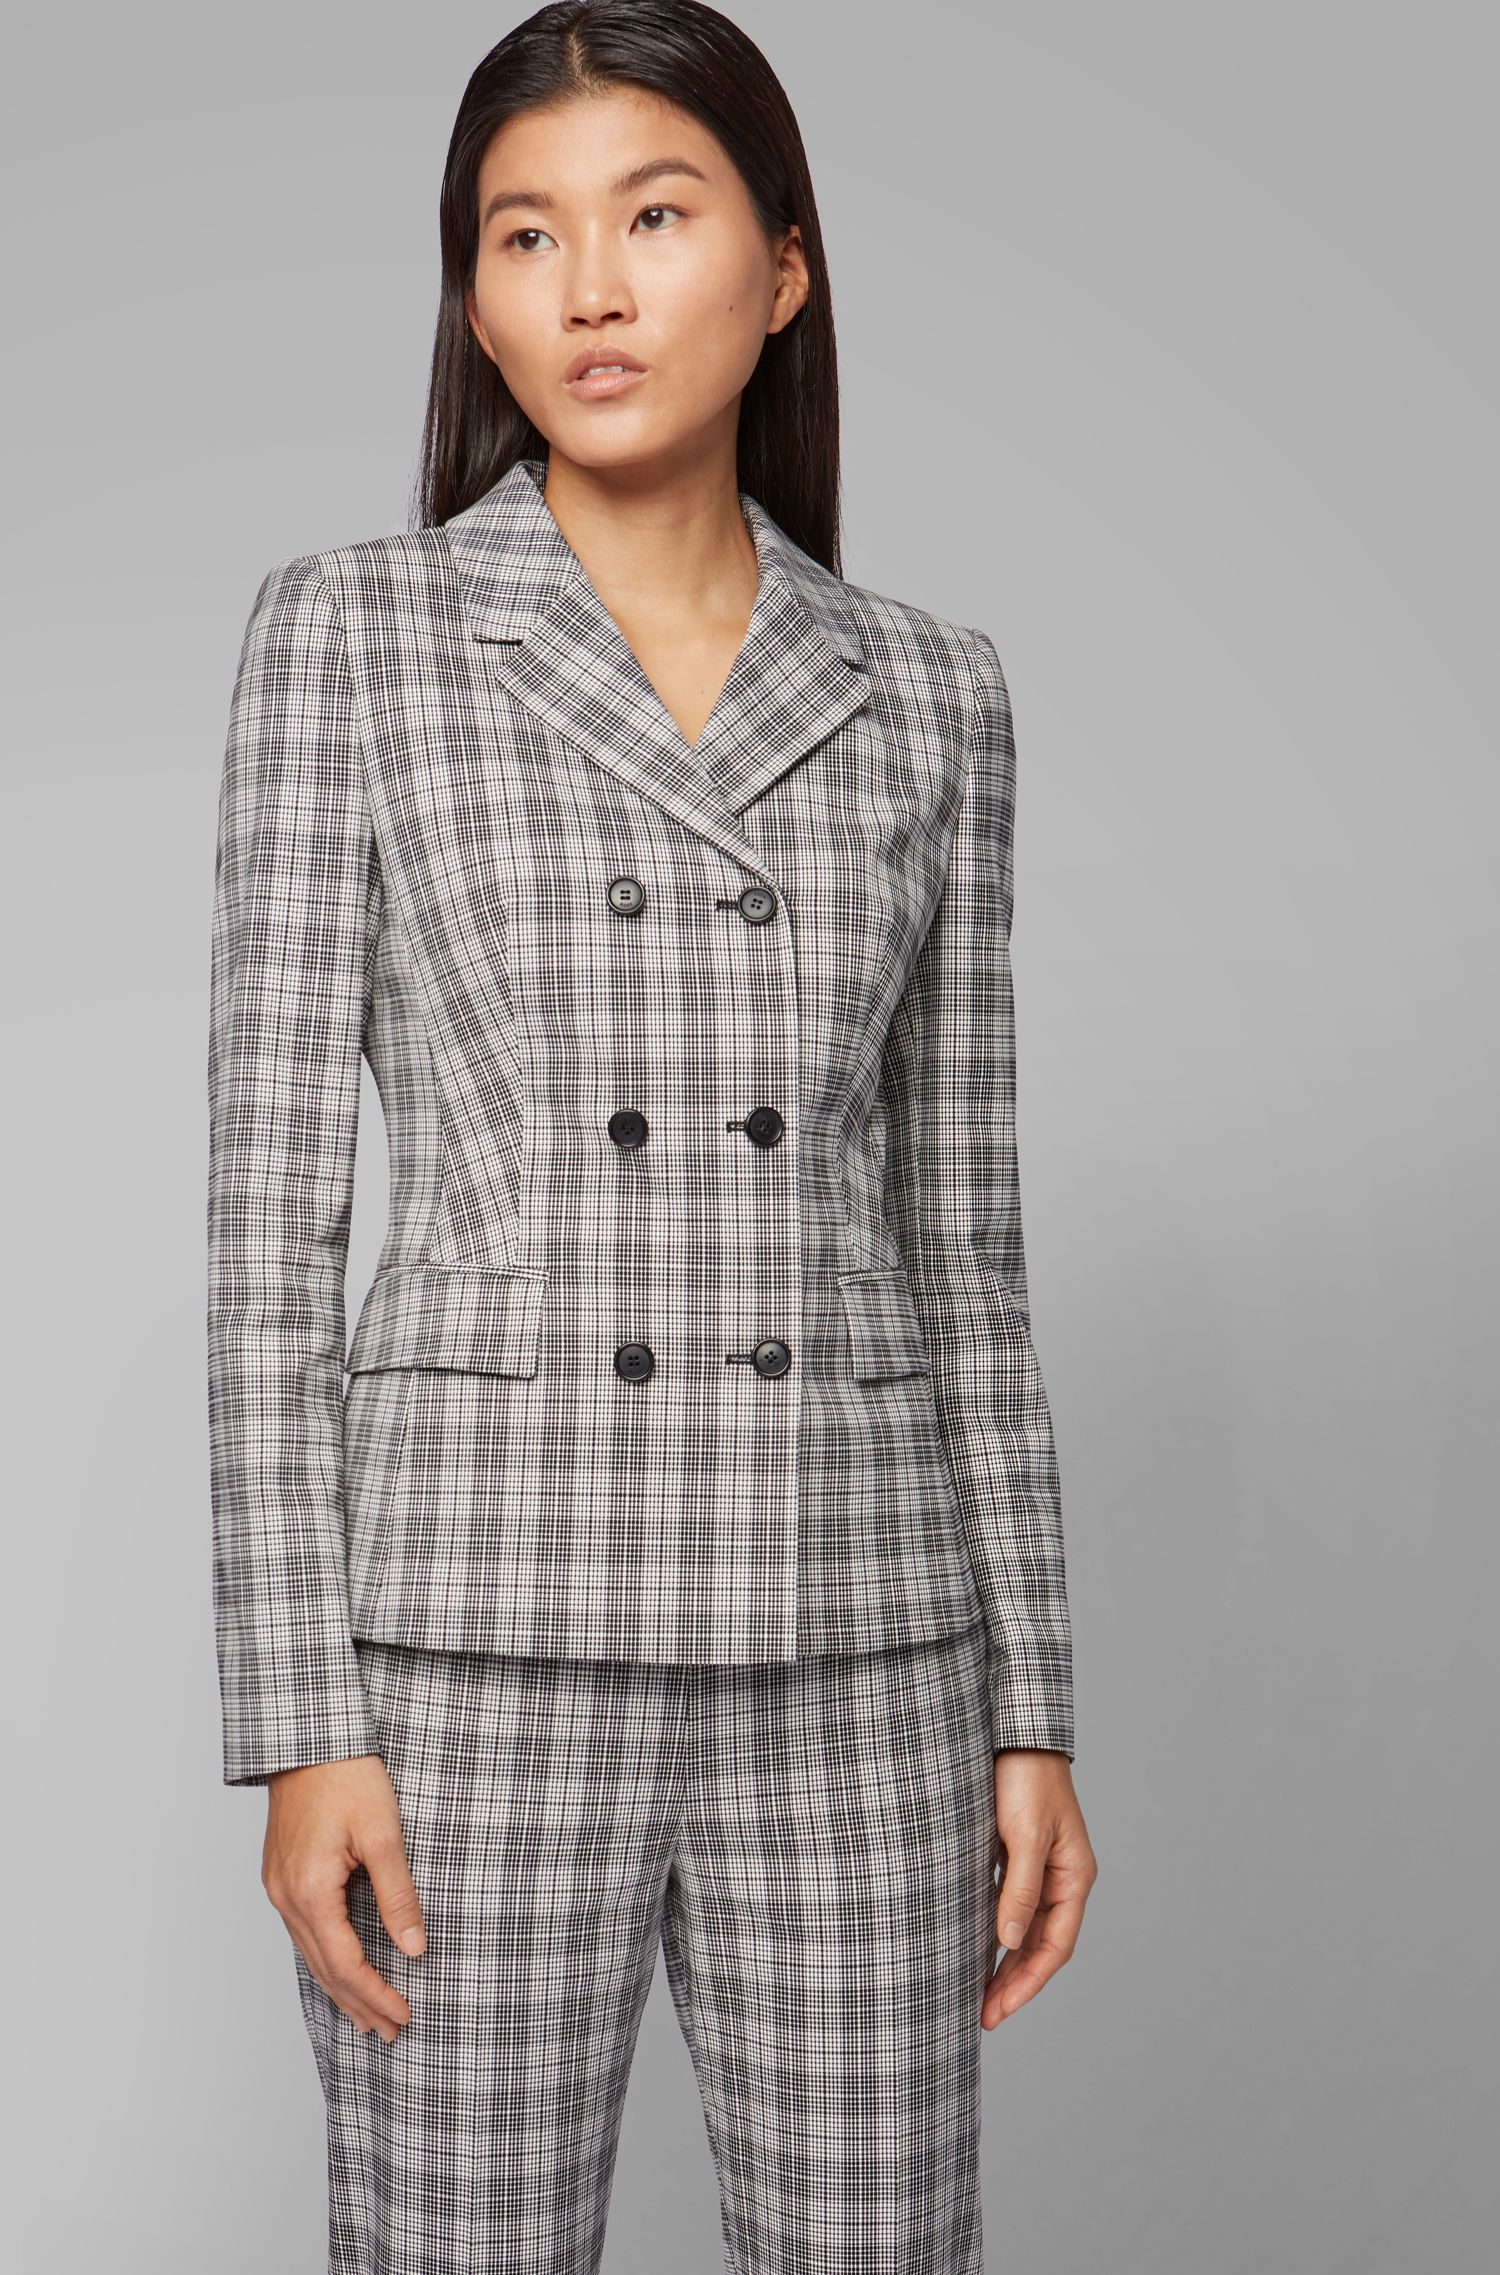 Double-breasted jacket in a Glen-check cotton blend, Patterned